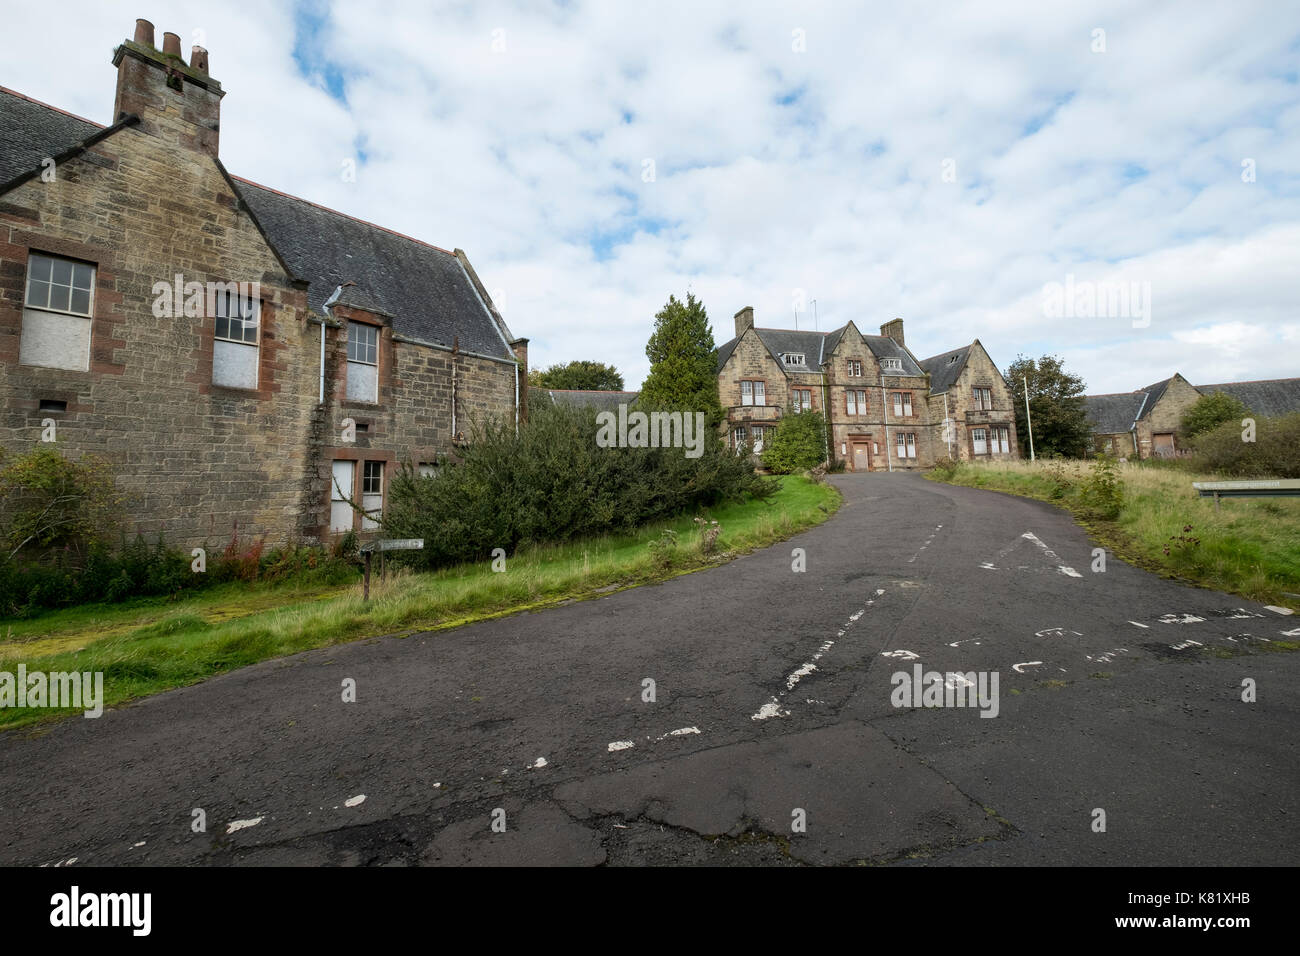 The grounds of the former Bangour Village hospital, Dechmont, West Lothian, Scotland which closed in 2004. - Stock Image